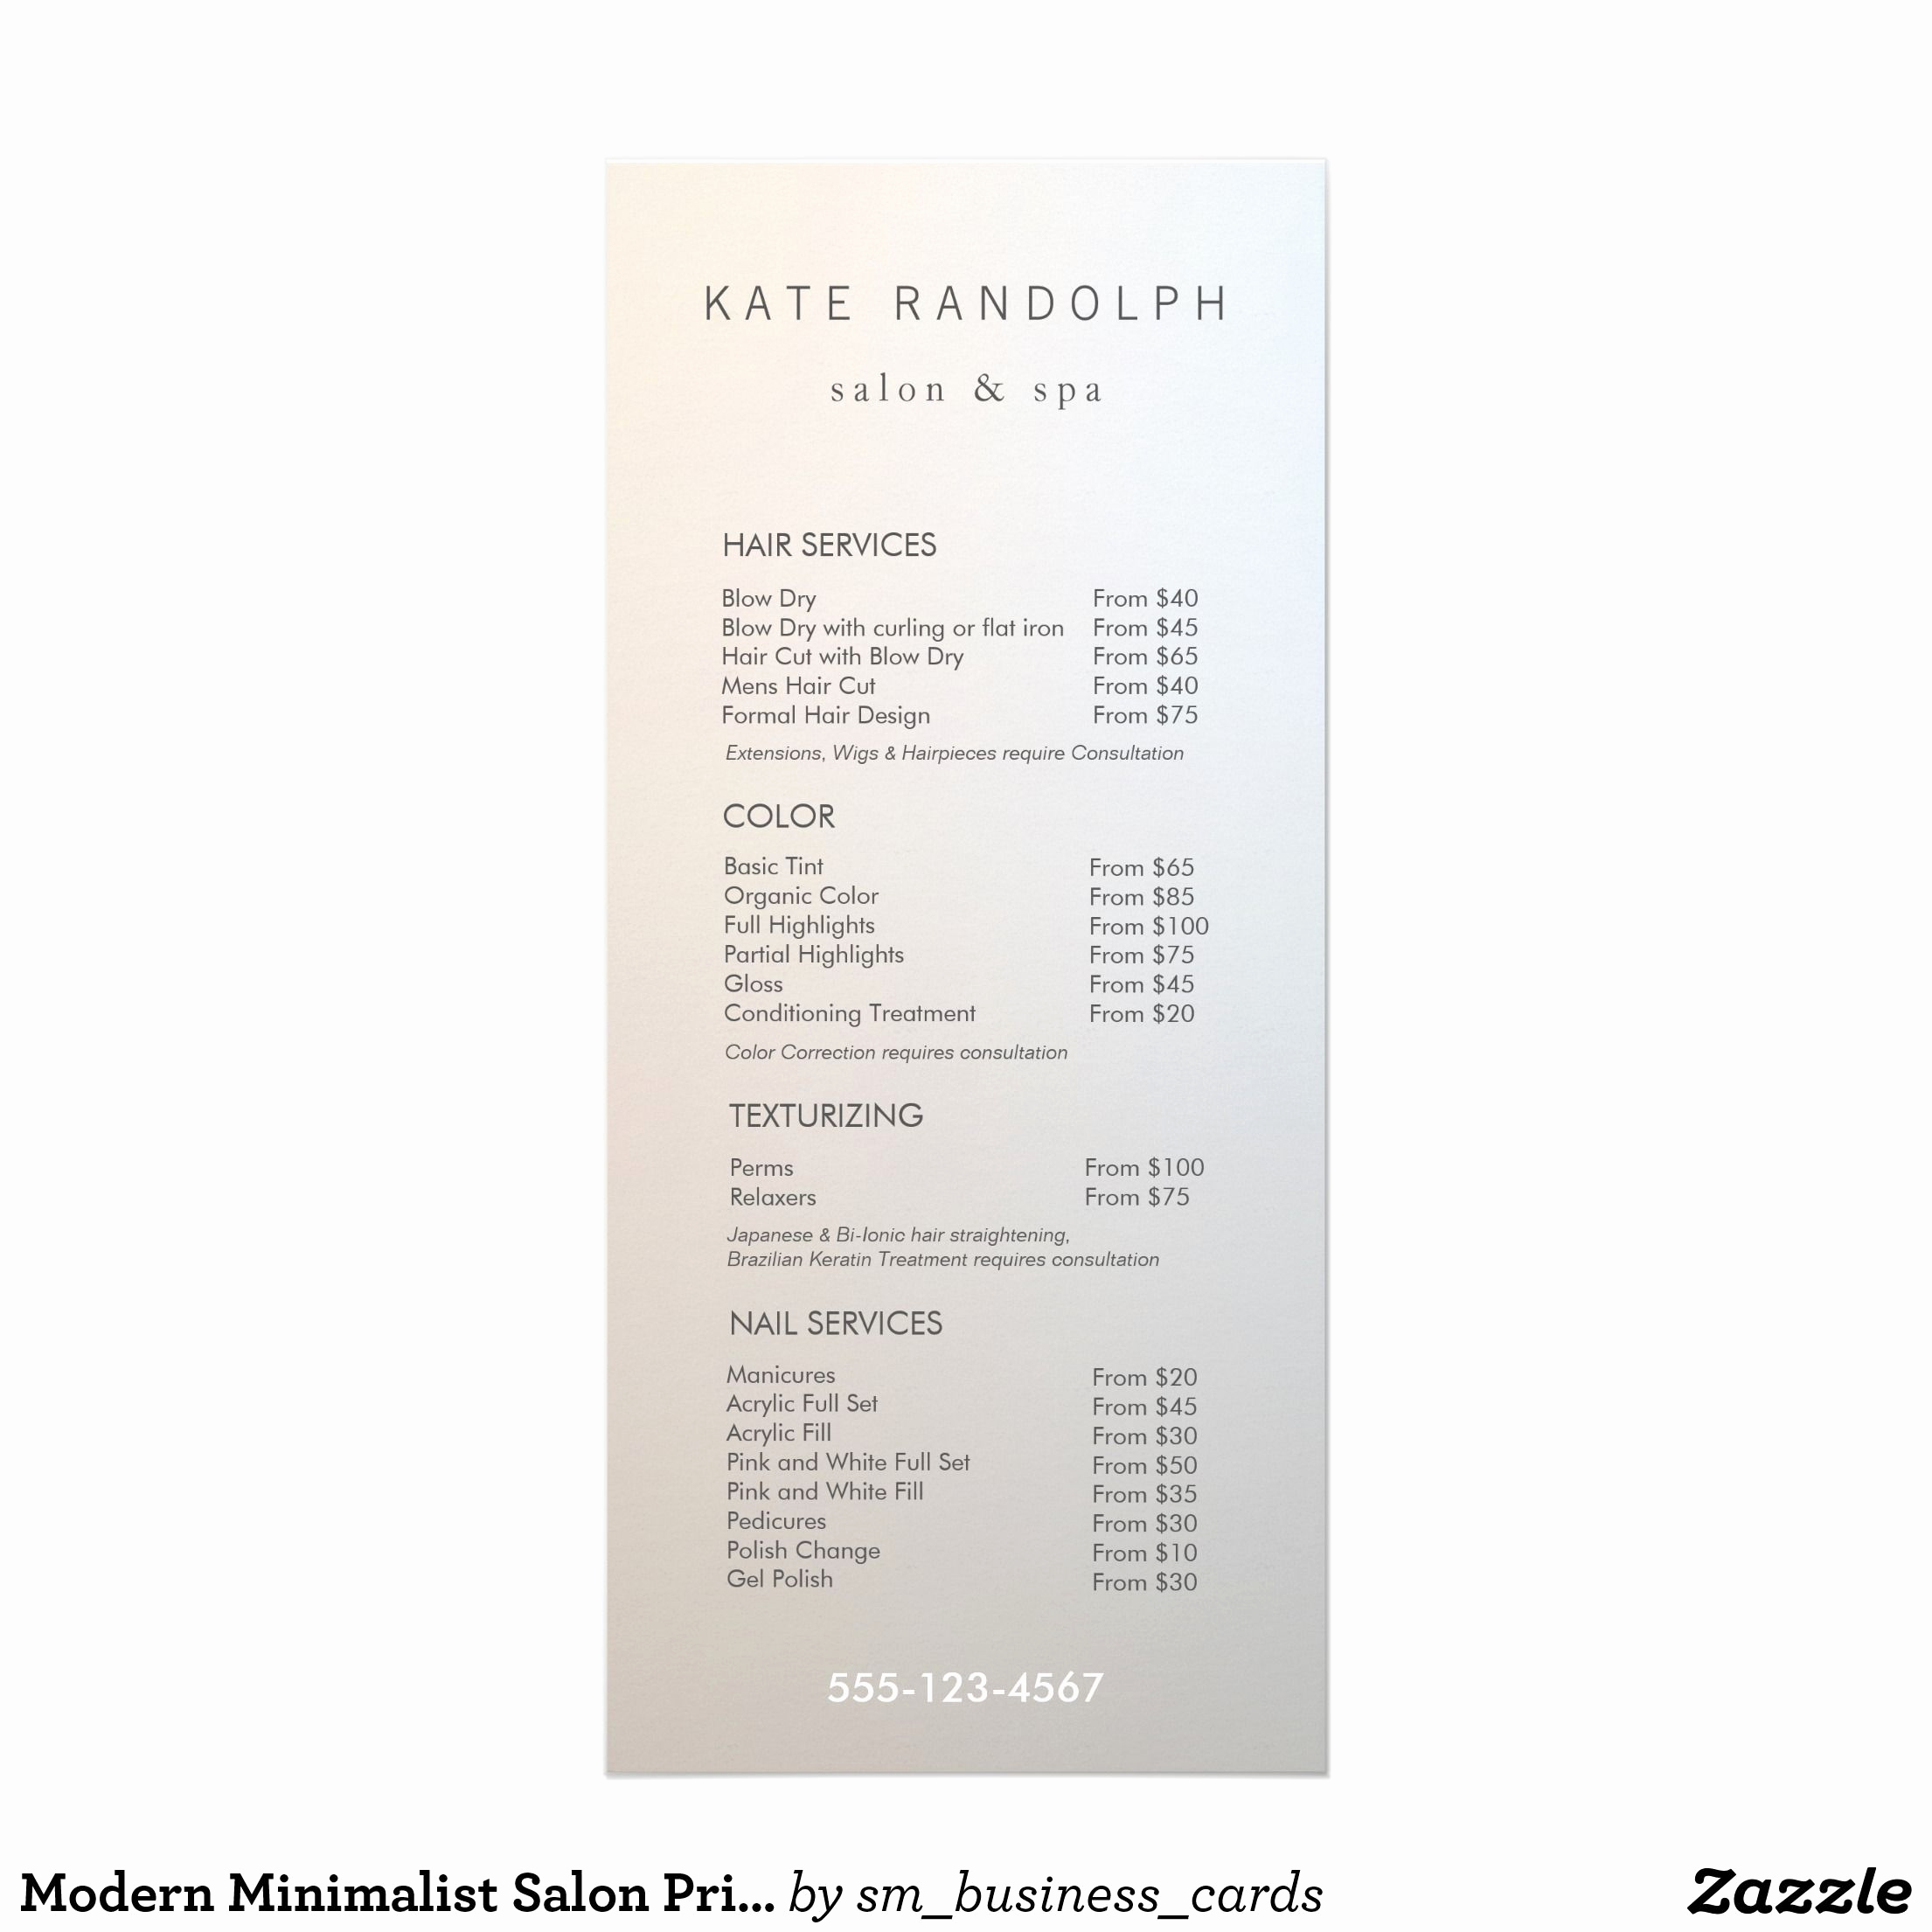 Salon Service Menu Template Luxury Modern Minimalist Salon Price List Service Menu 25 Cards